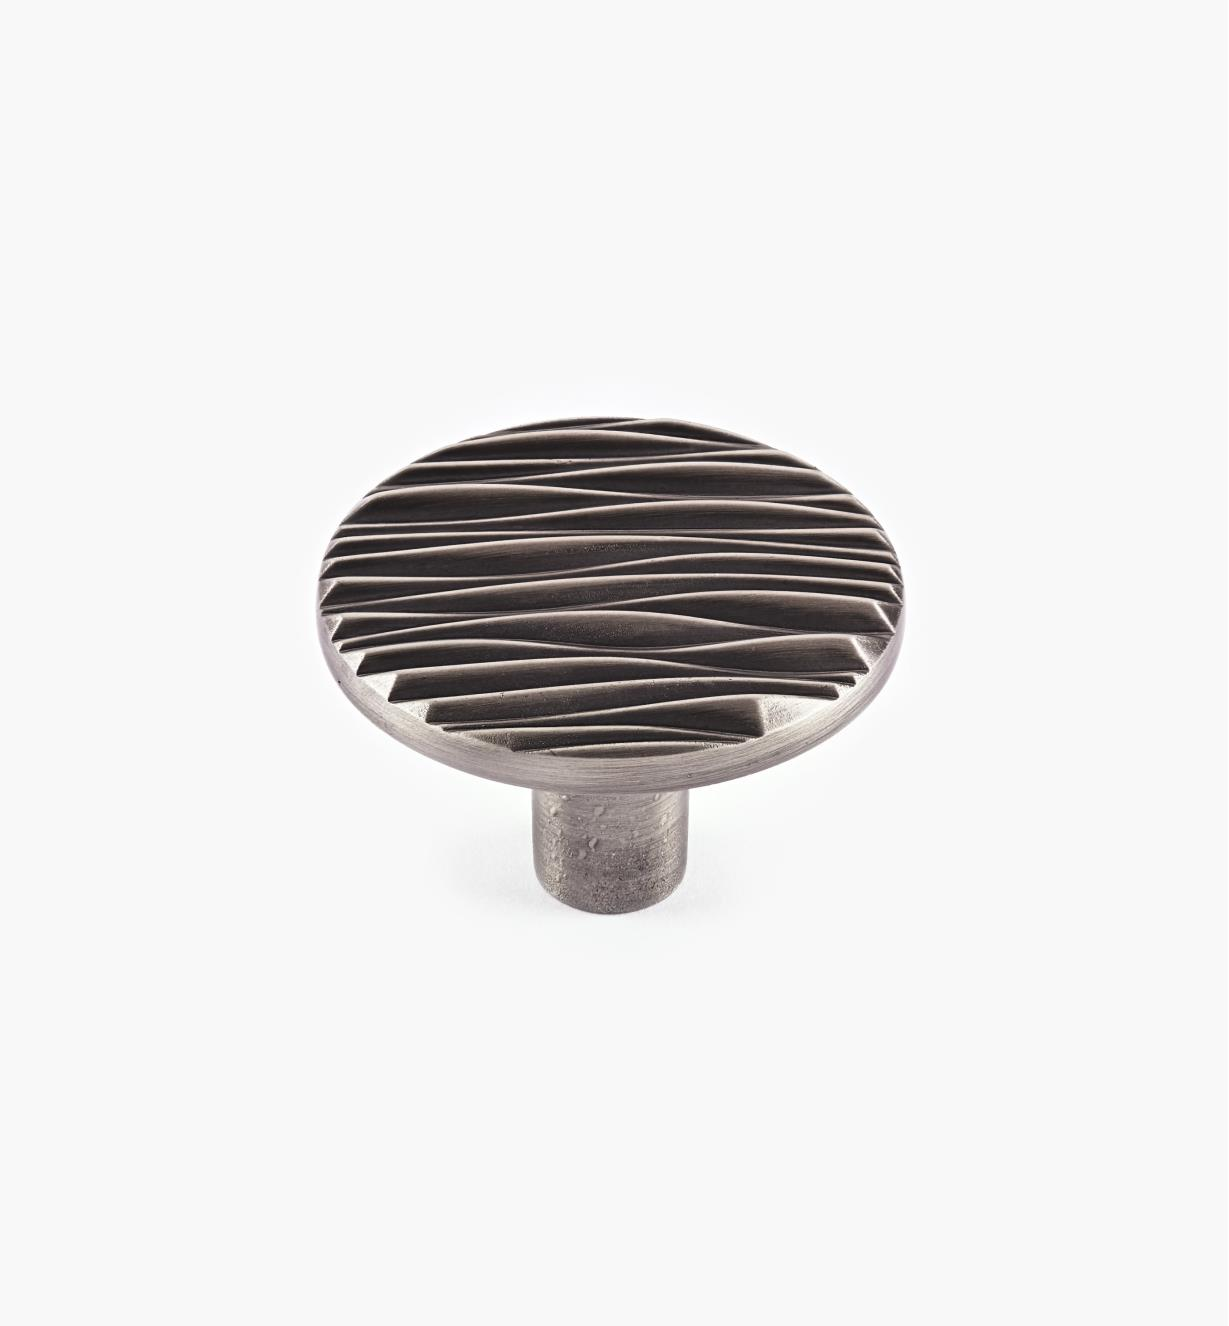 "01W0730 - Rio Suite - 1 3/4"" Brushed Antique Pewter Knob"